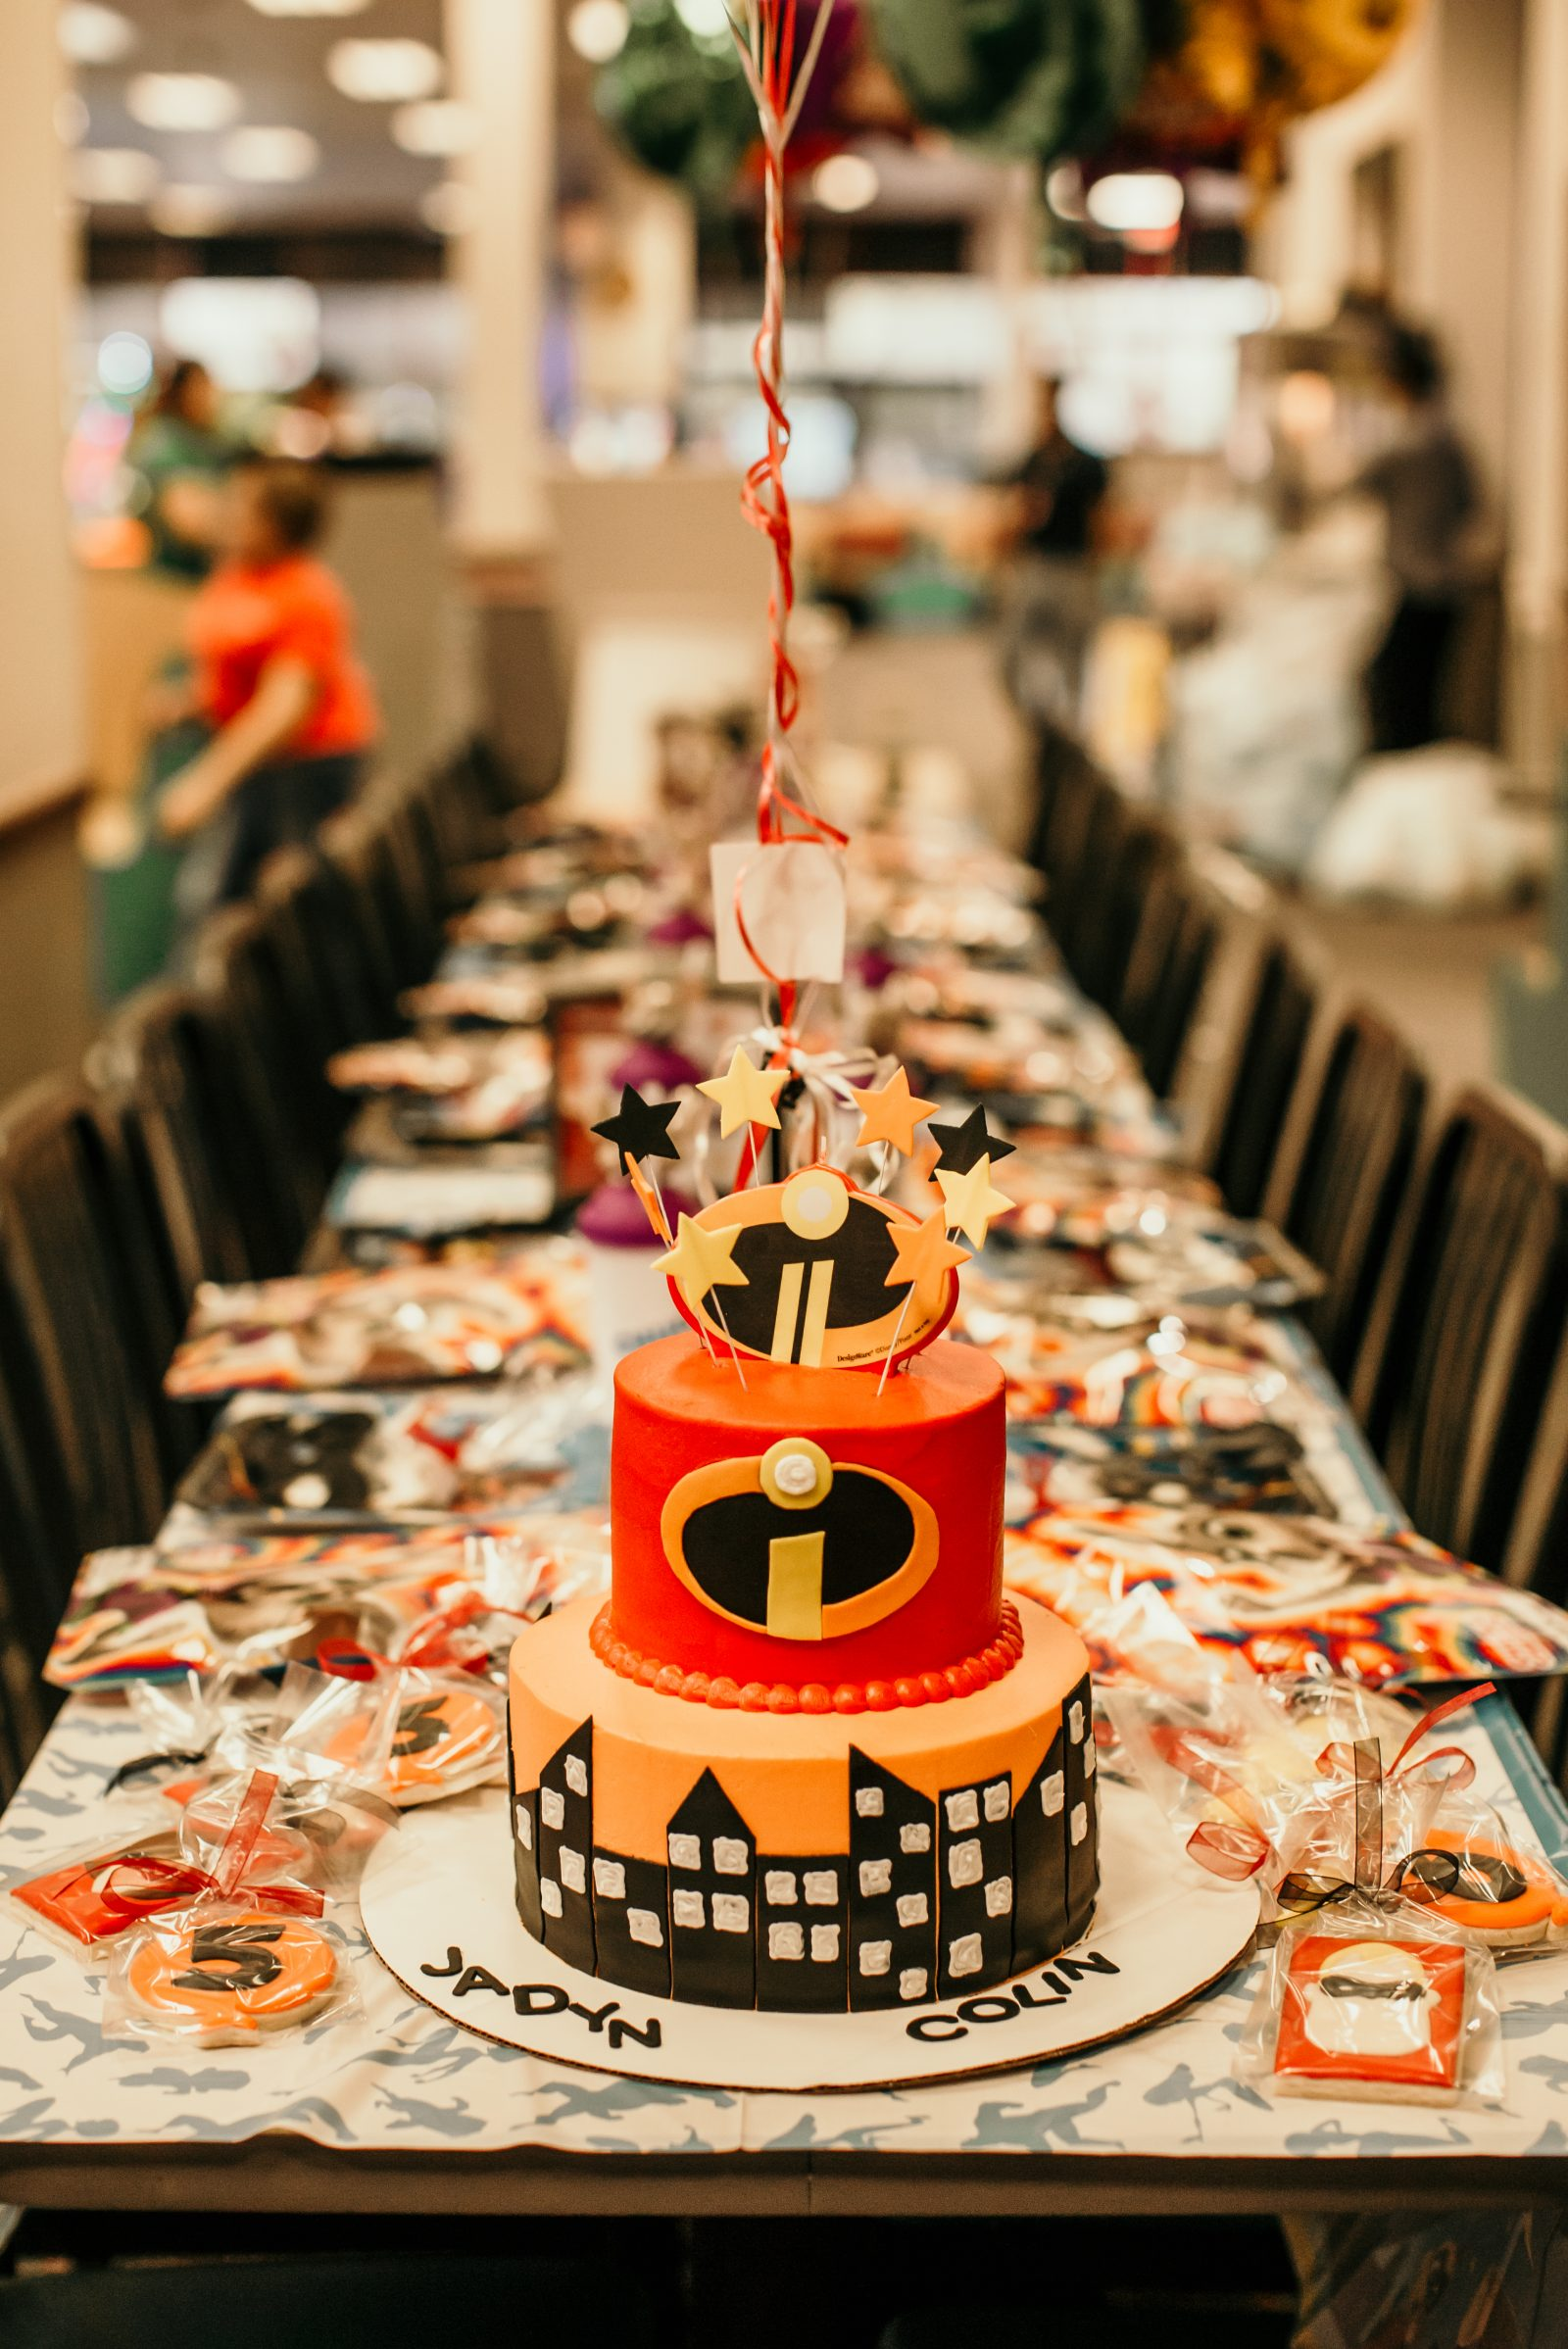 Houston blogger Elly Brown shares her Incredibles 2 birthday cake for her sons joint birthday party!